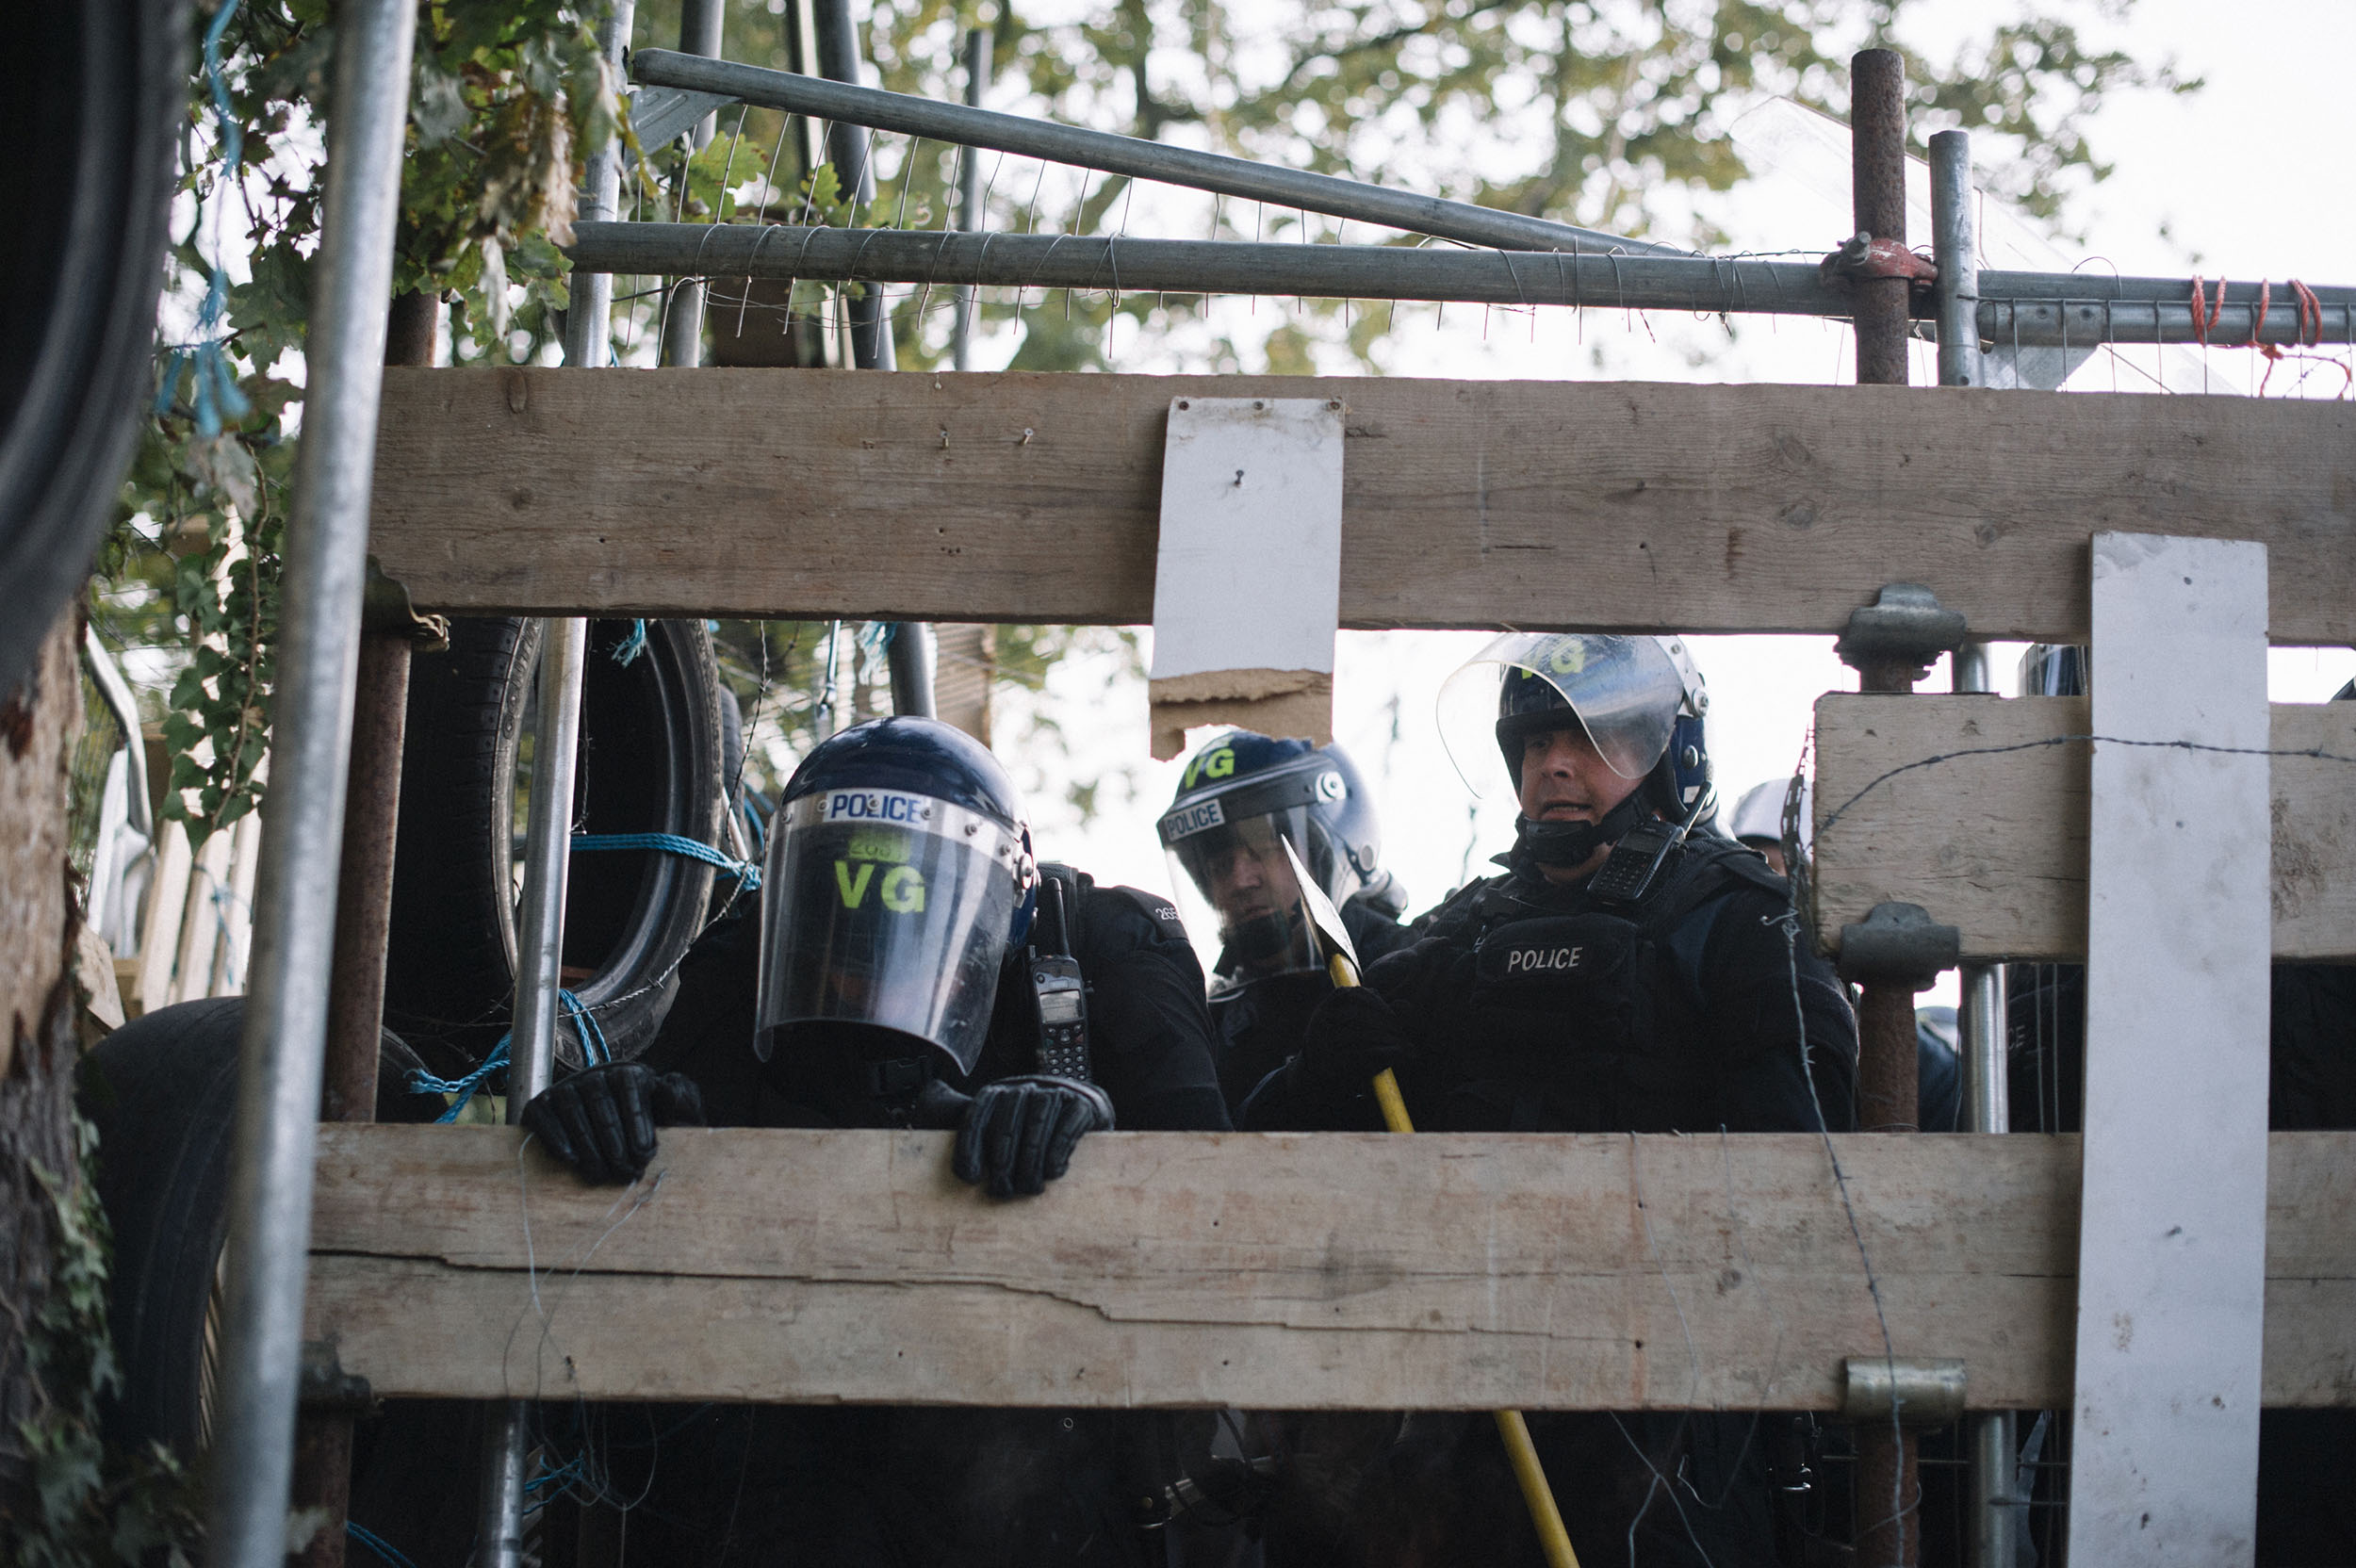 Police use axes to break the barriers of the activists, slowly they gain control of the site.